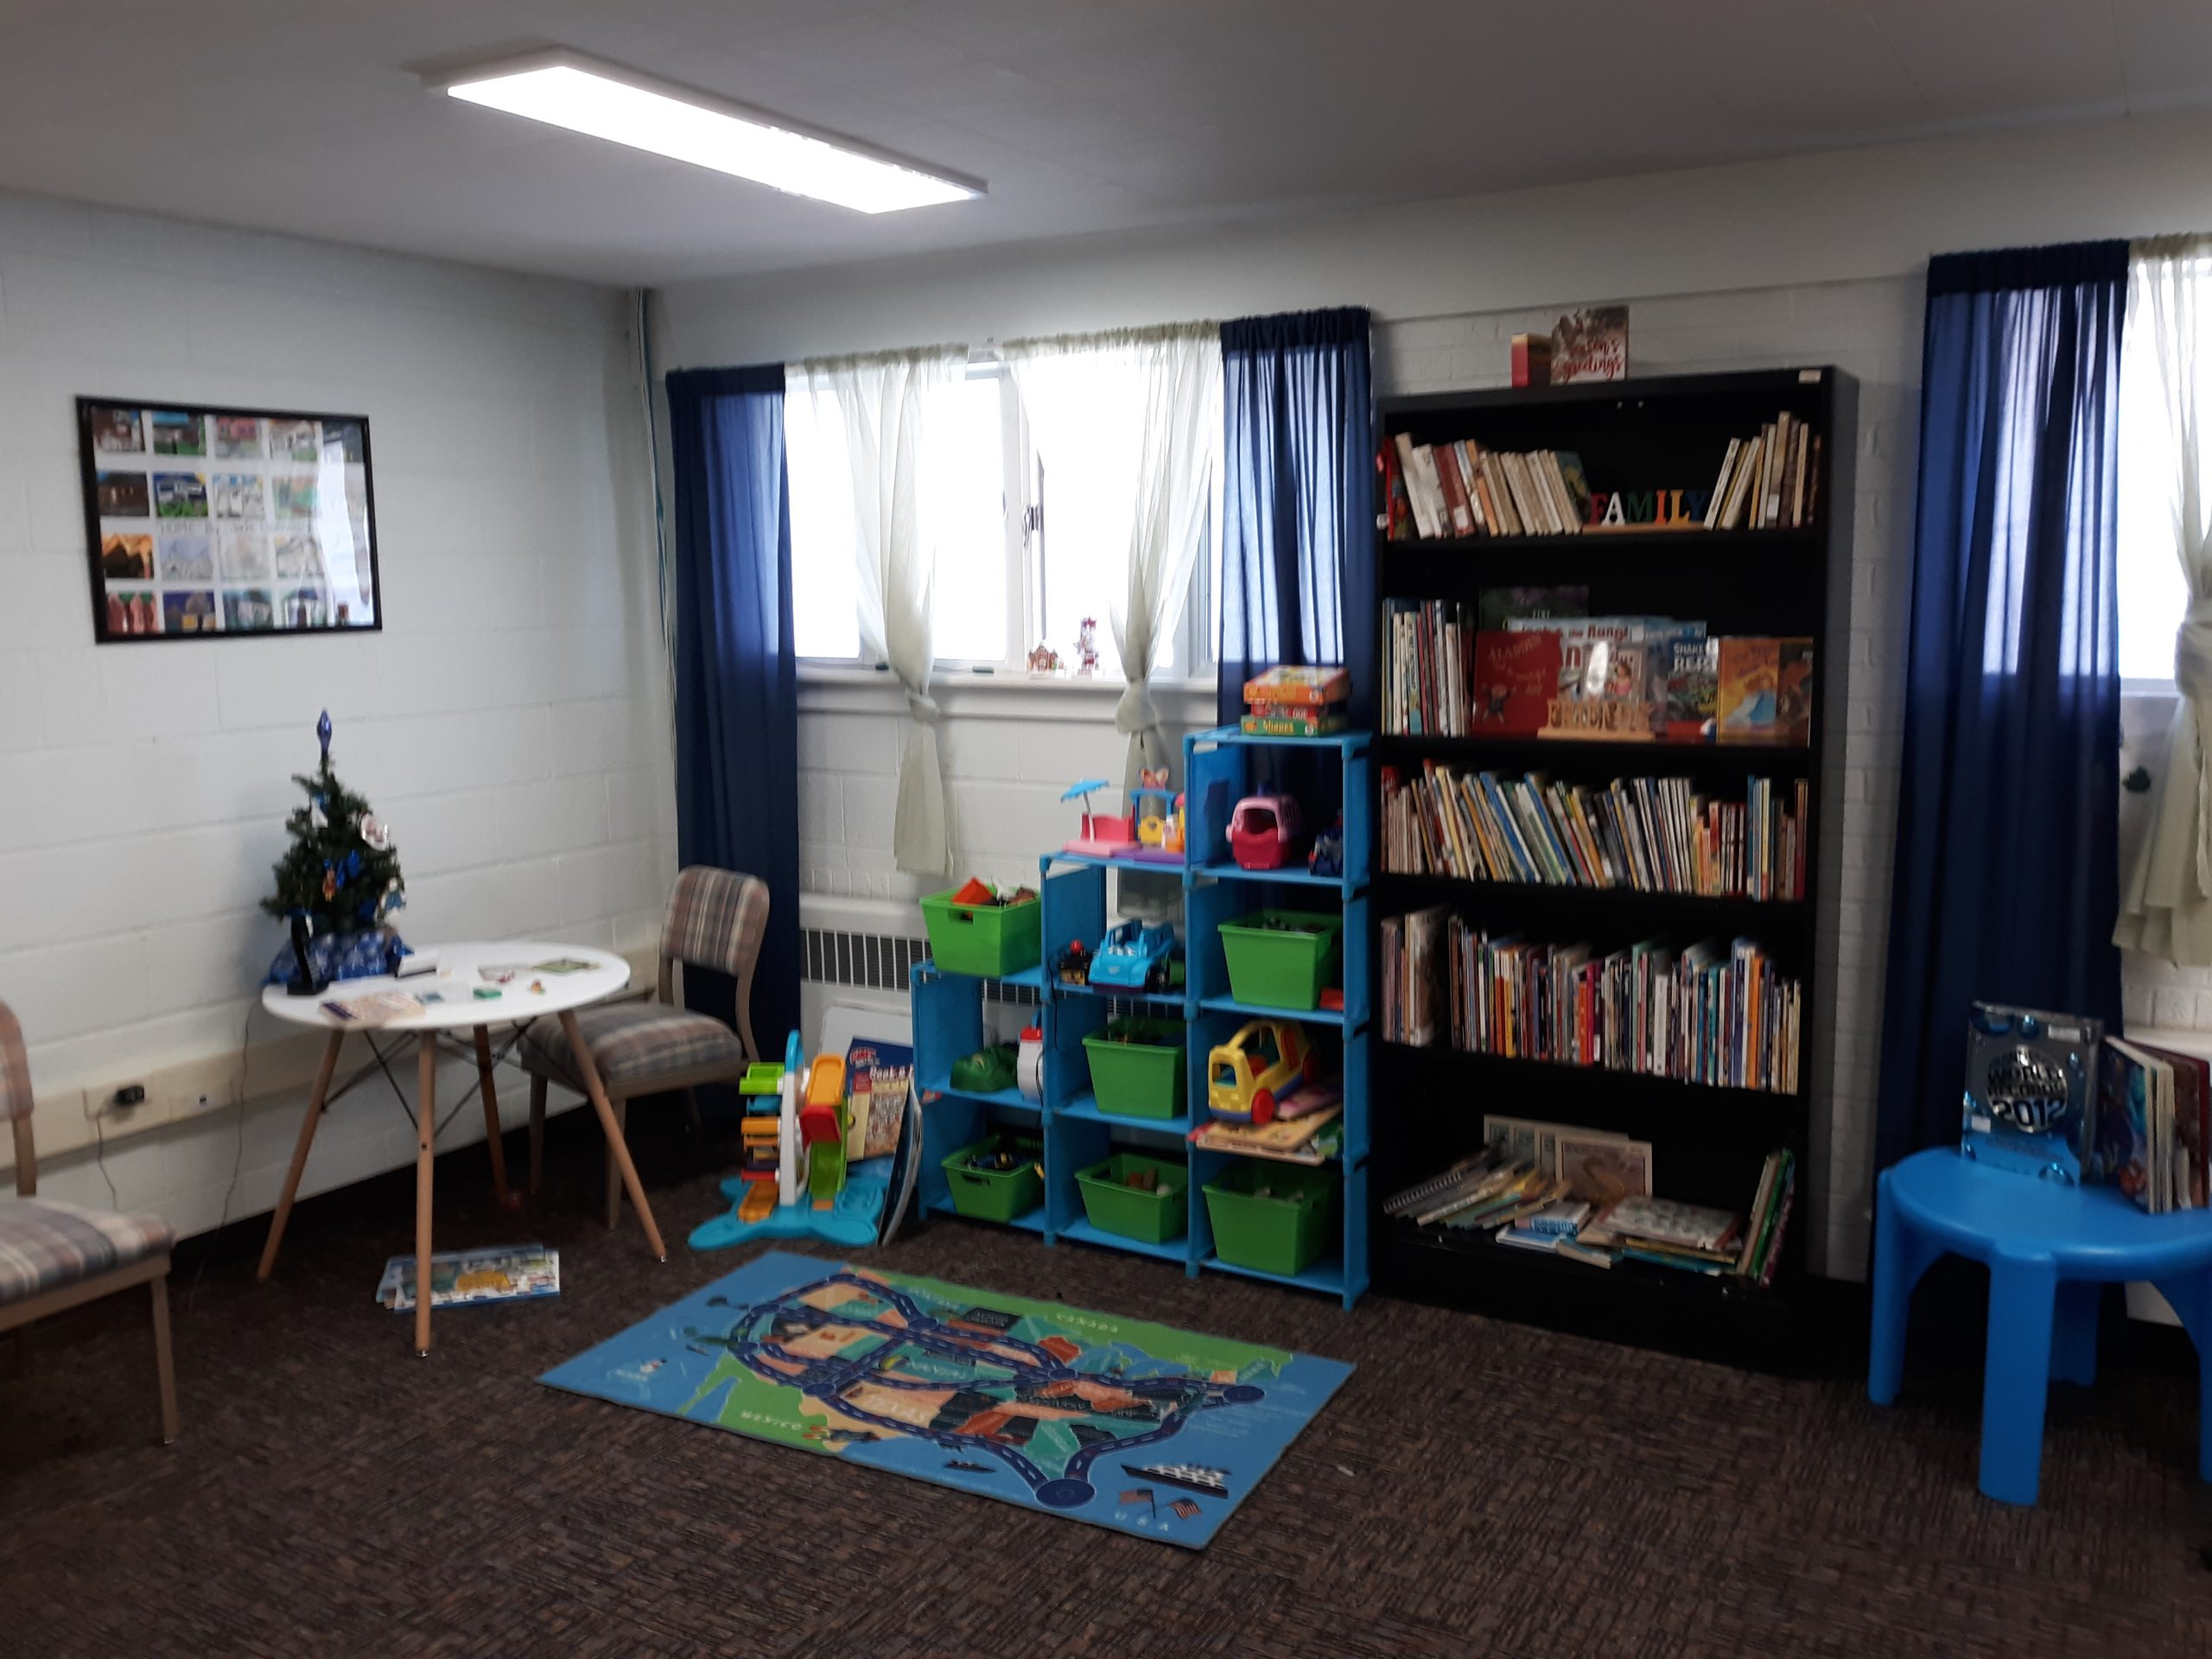 A room at the Family Promise of Albany County offices with children's toys, a table and chairs, and a bookcase full of books.